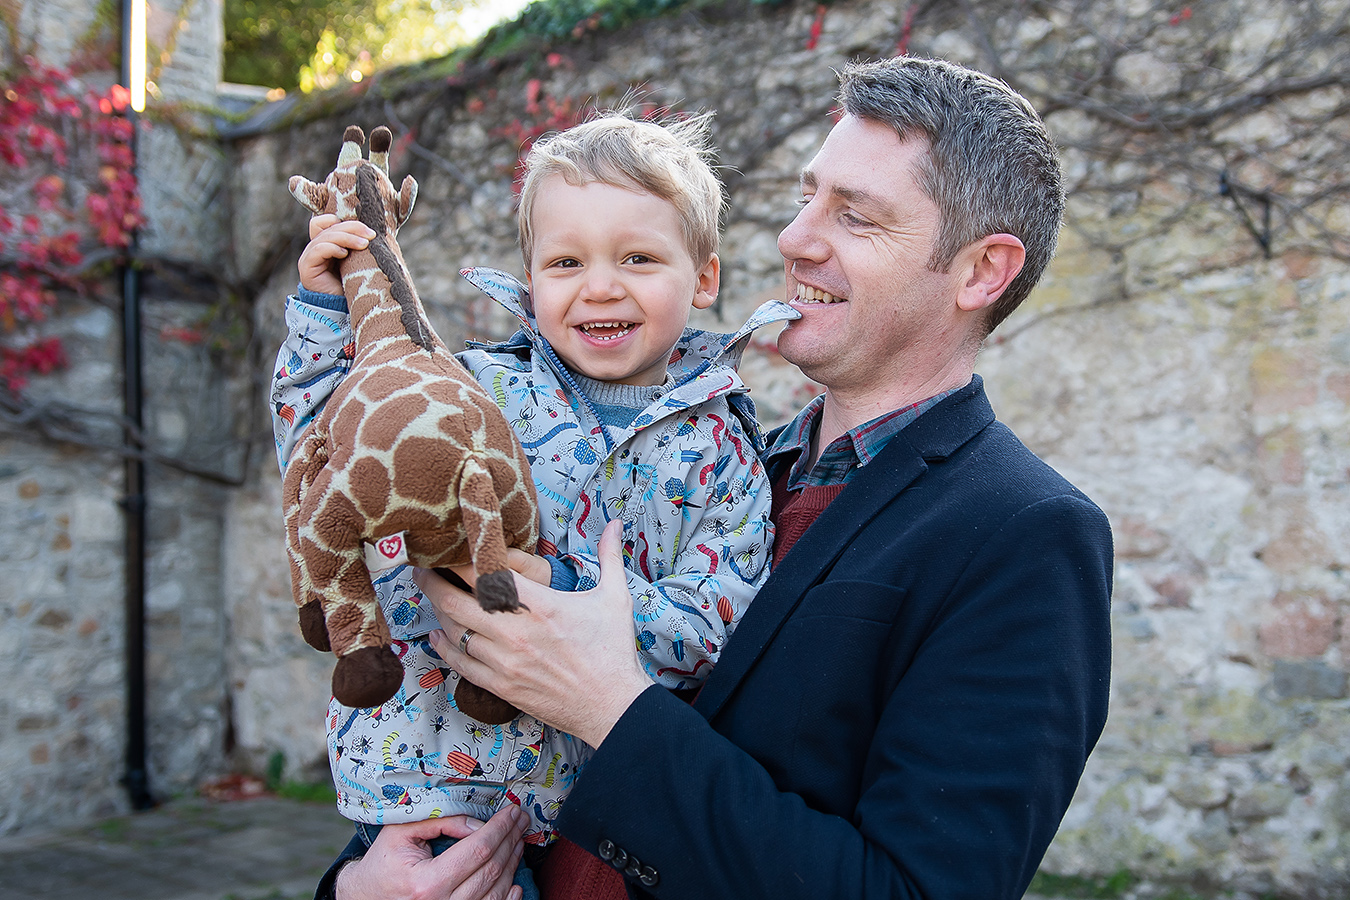 Father and son - Family Photoshoot at Marlay Park in Dublin by Camila Lee